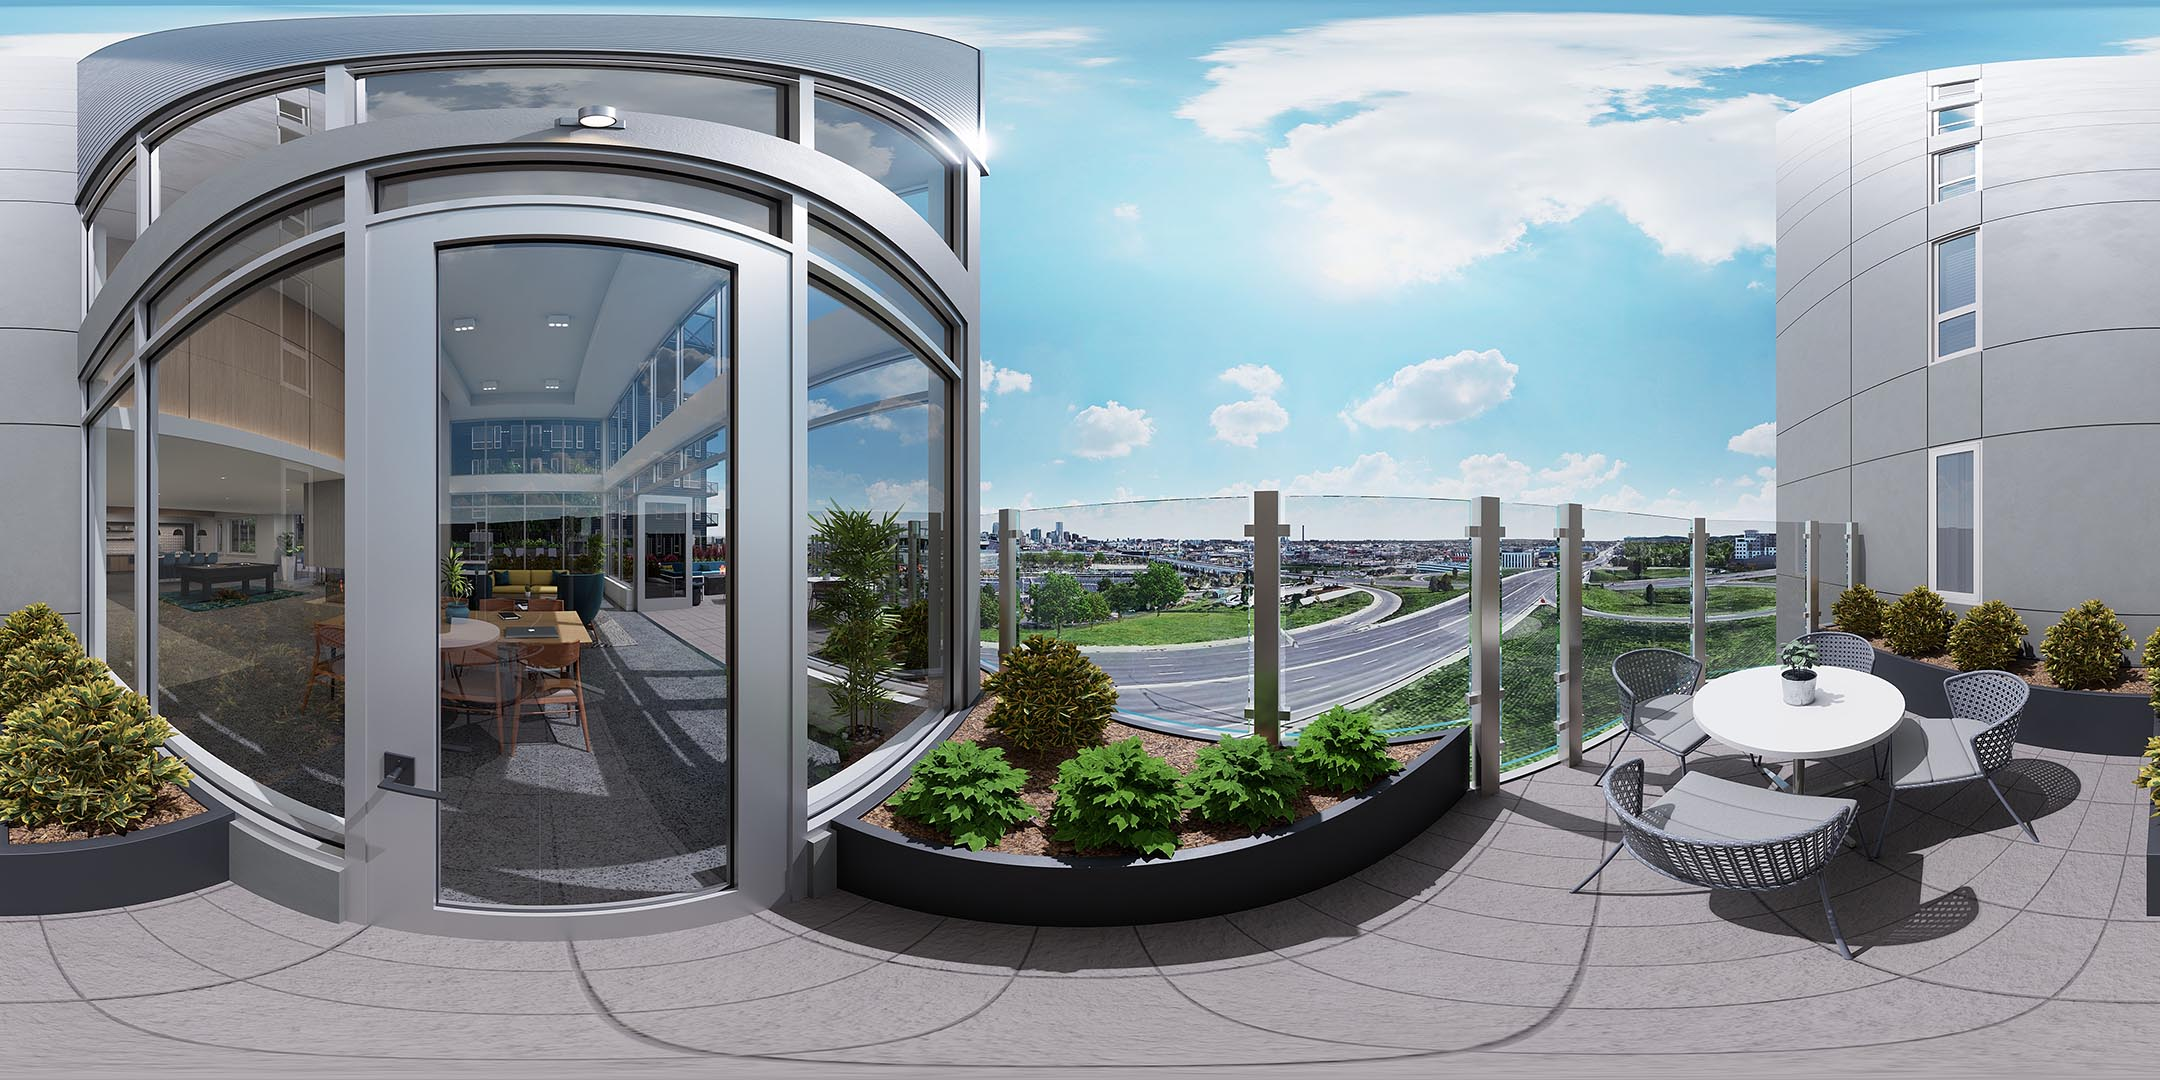 A 360 rendering of an outside courtyard space